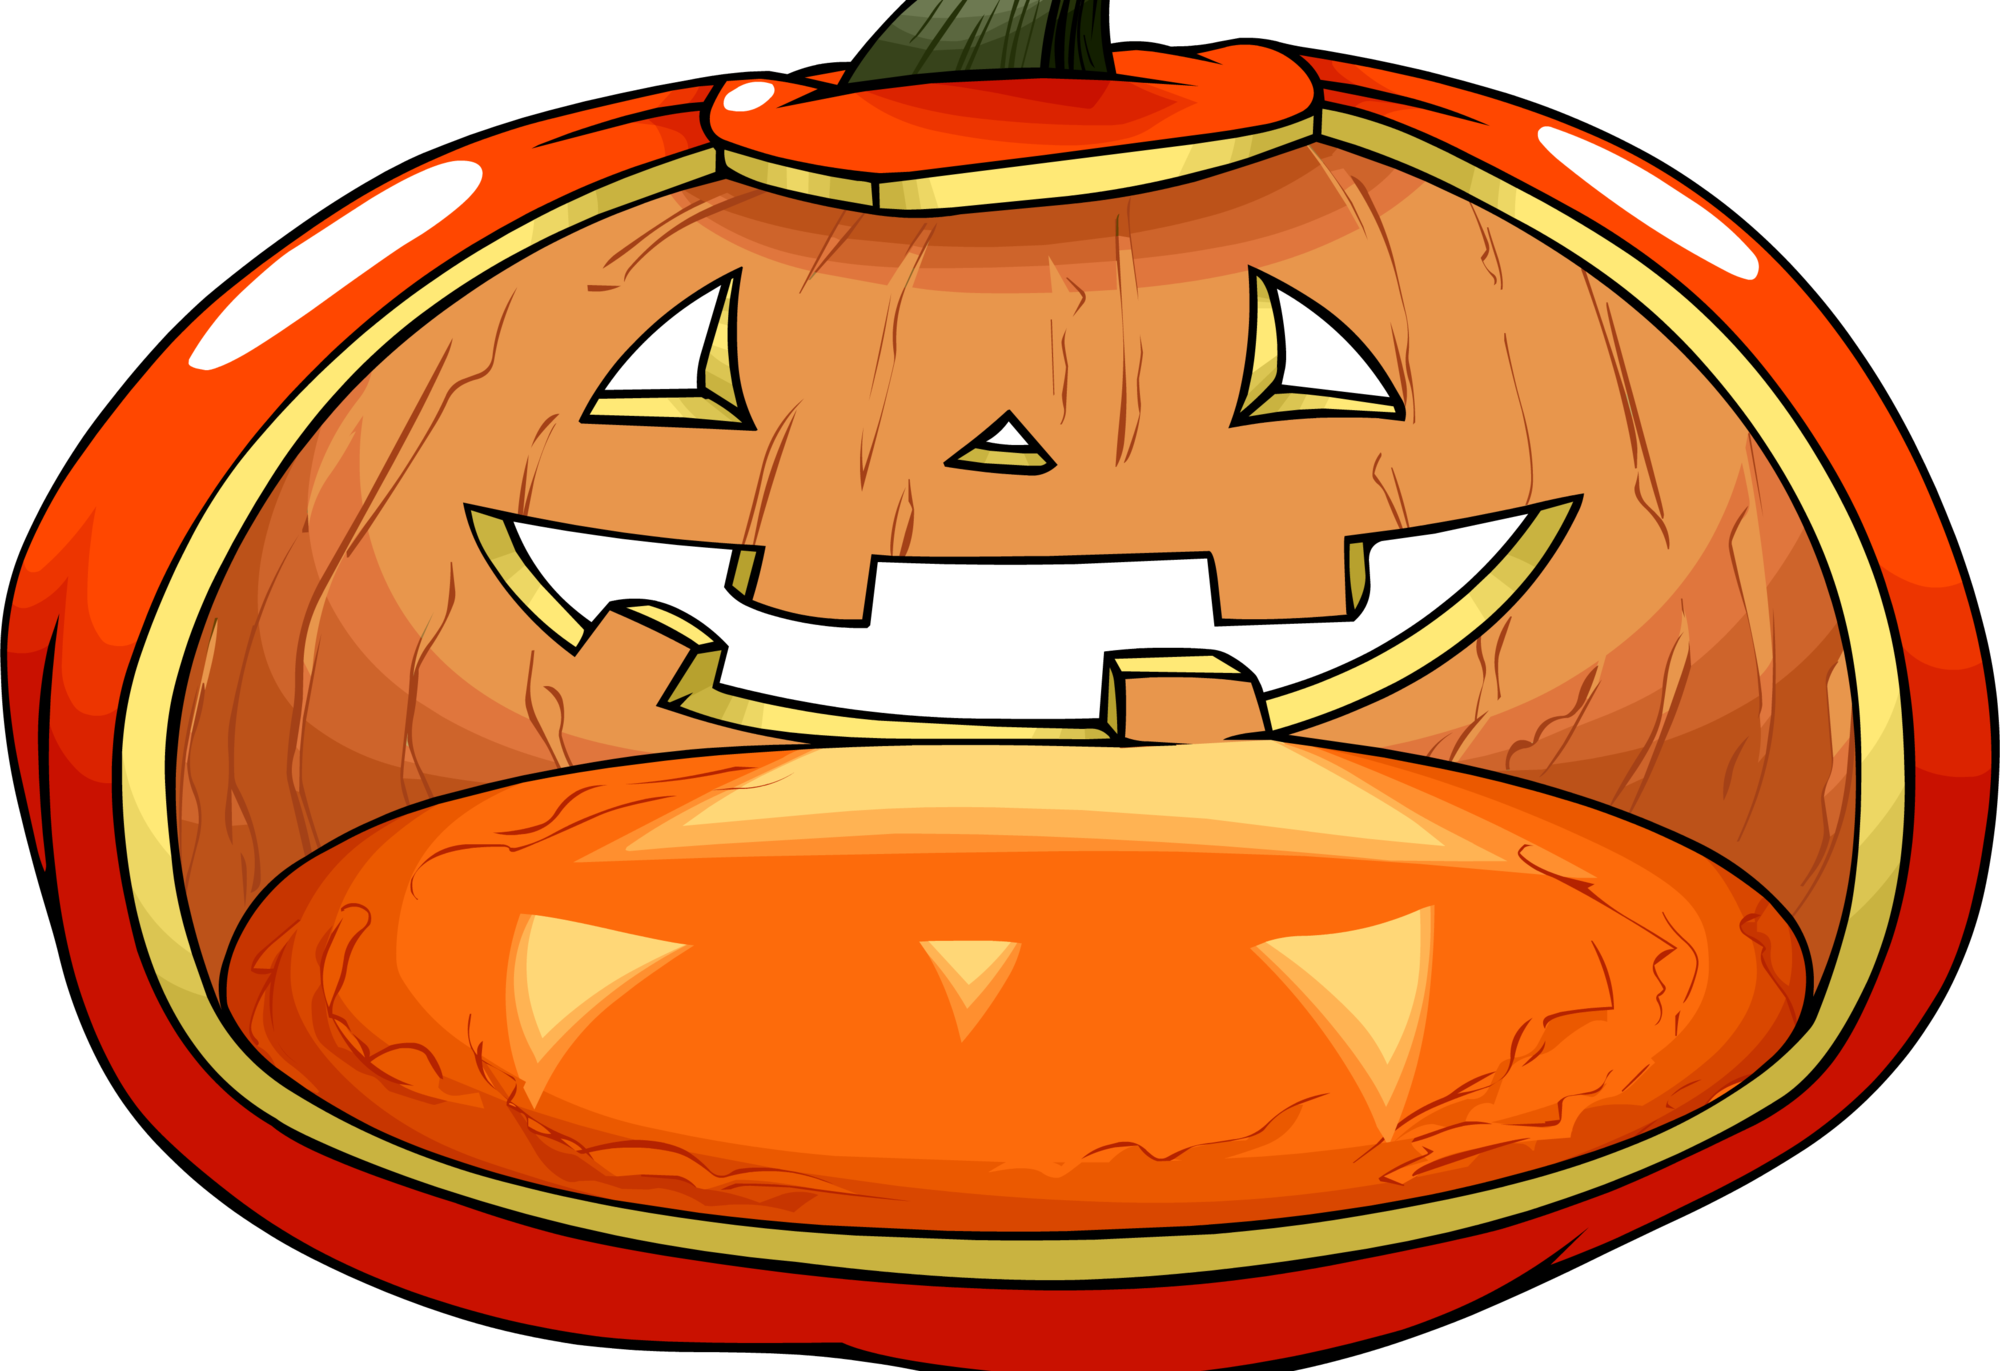 Pink and gold pumpkin clipart picture black and white download Jack O' Lantern | Club Penguin Wiki | FANDOM powered by Wikia picture black and white download